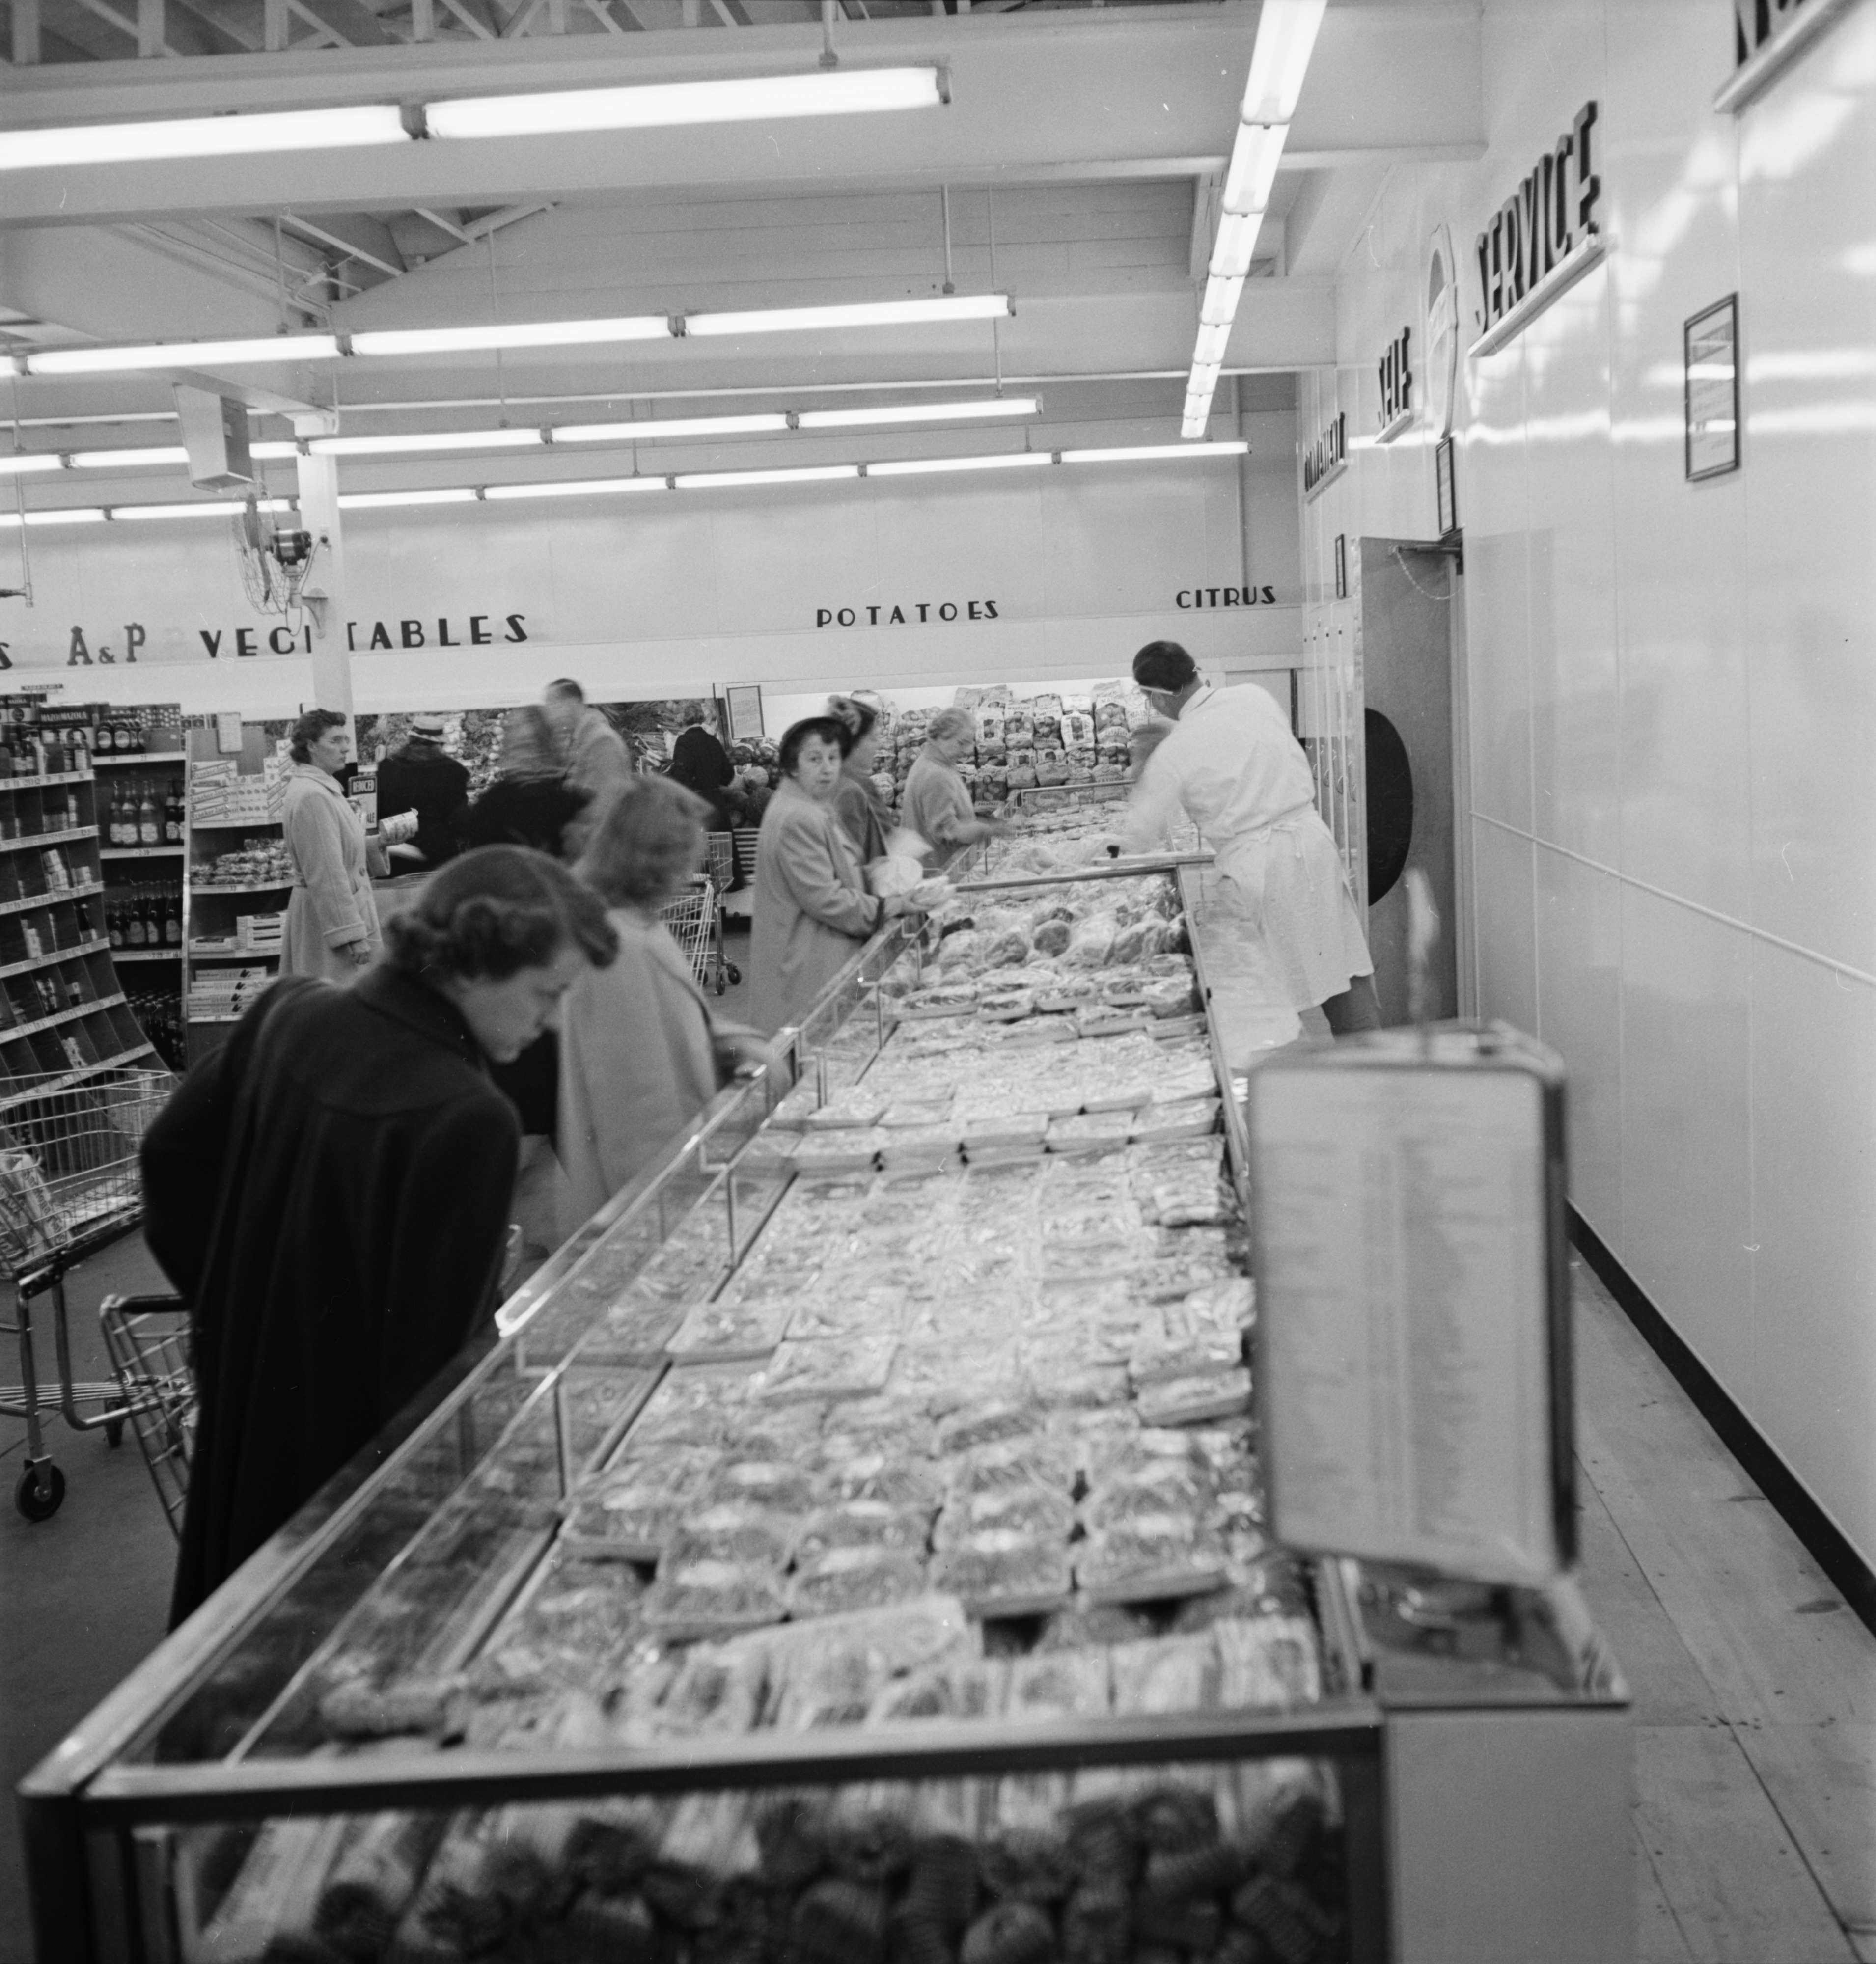 Self Serve Meat Counter at the A & P Store, November 1950 image